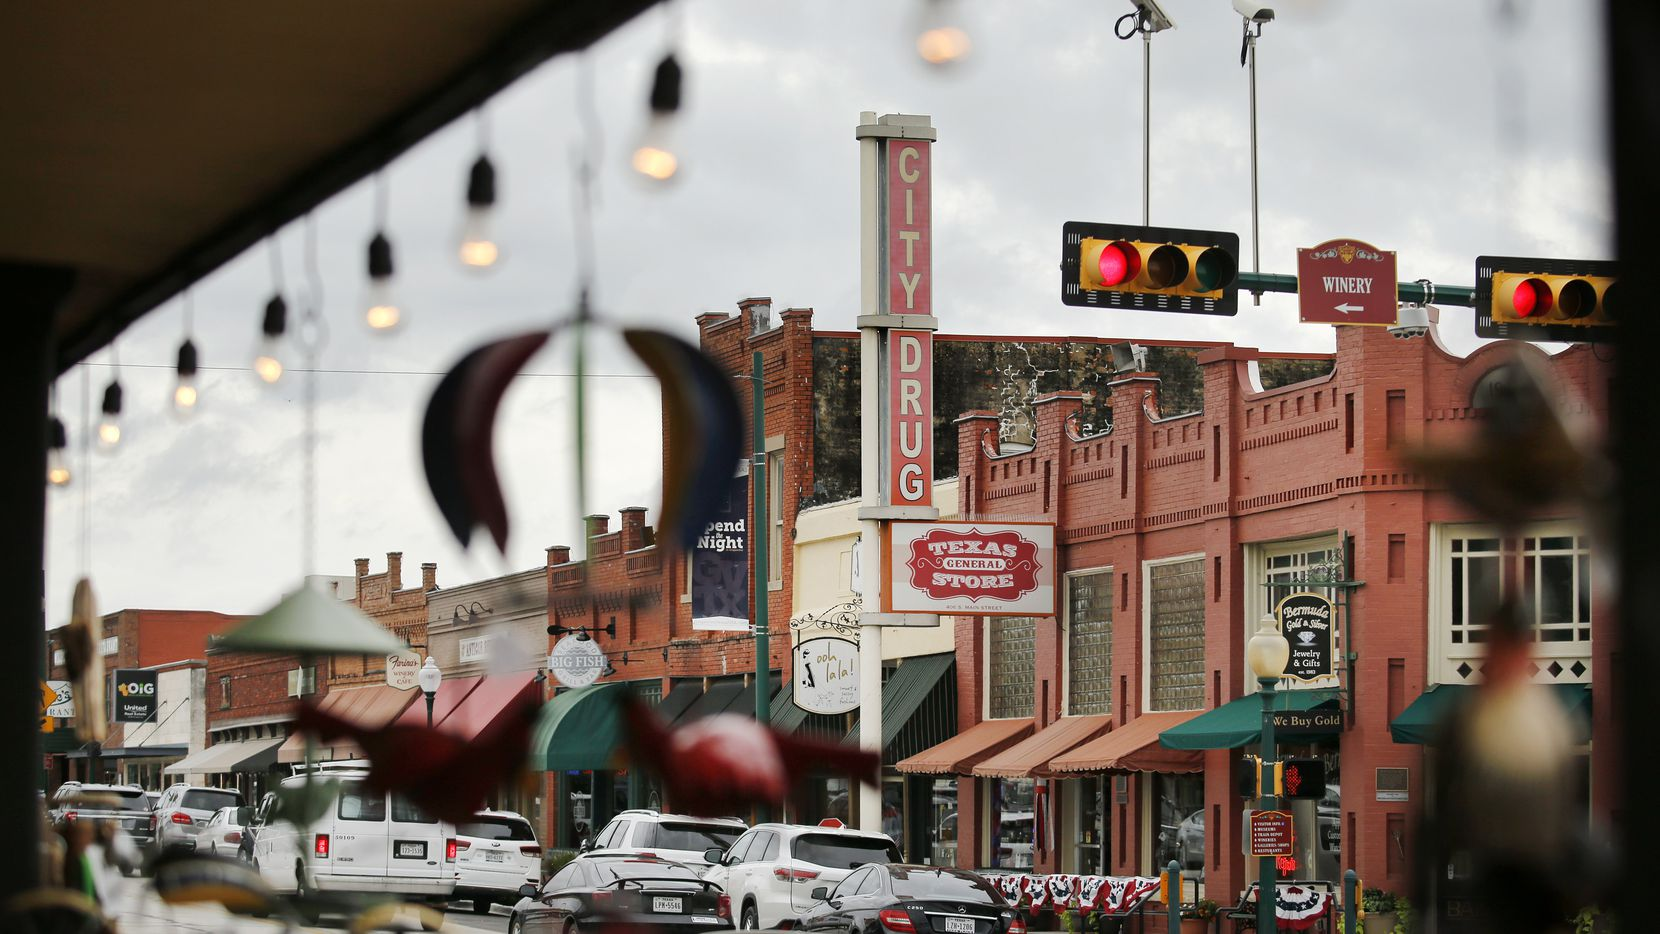 A view of historic downtown Grapevine, Texas, from Grapevine's Market on Main, Tuesday, June 23, 2020. (Tom Fox/The Dallas Morning News)